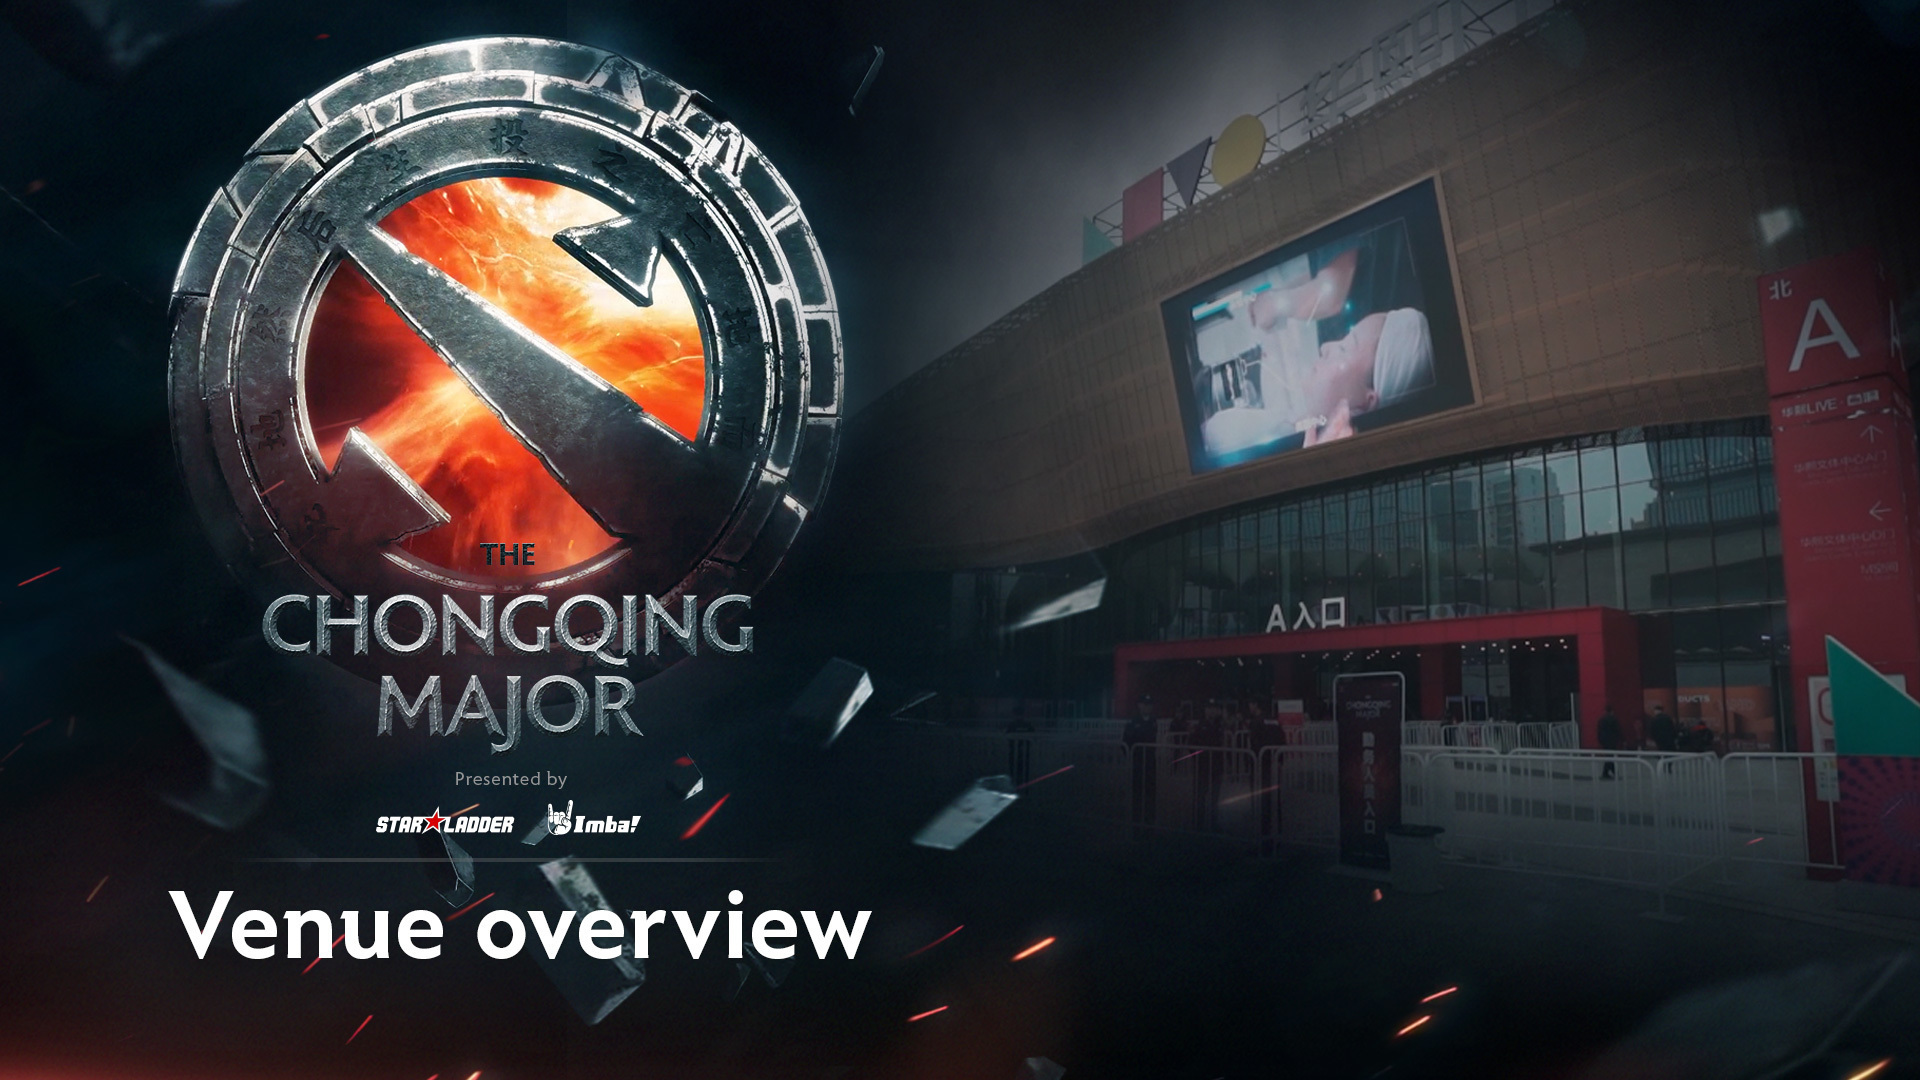 The Chongqing Major: Venue overview